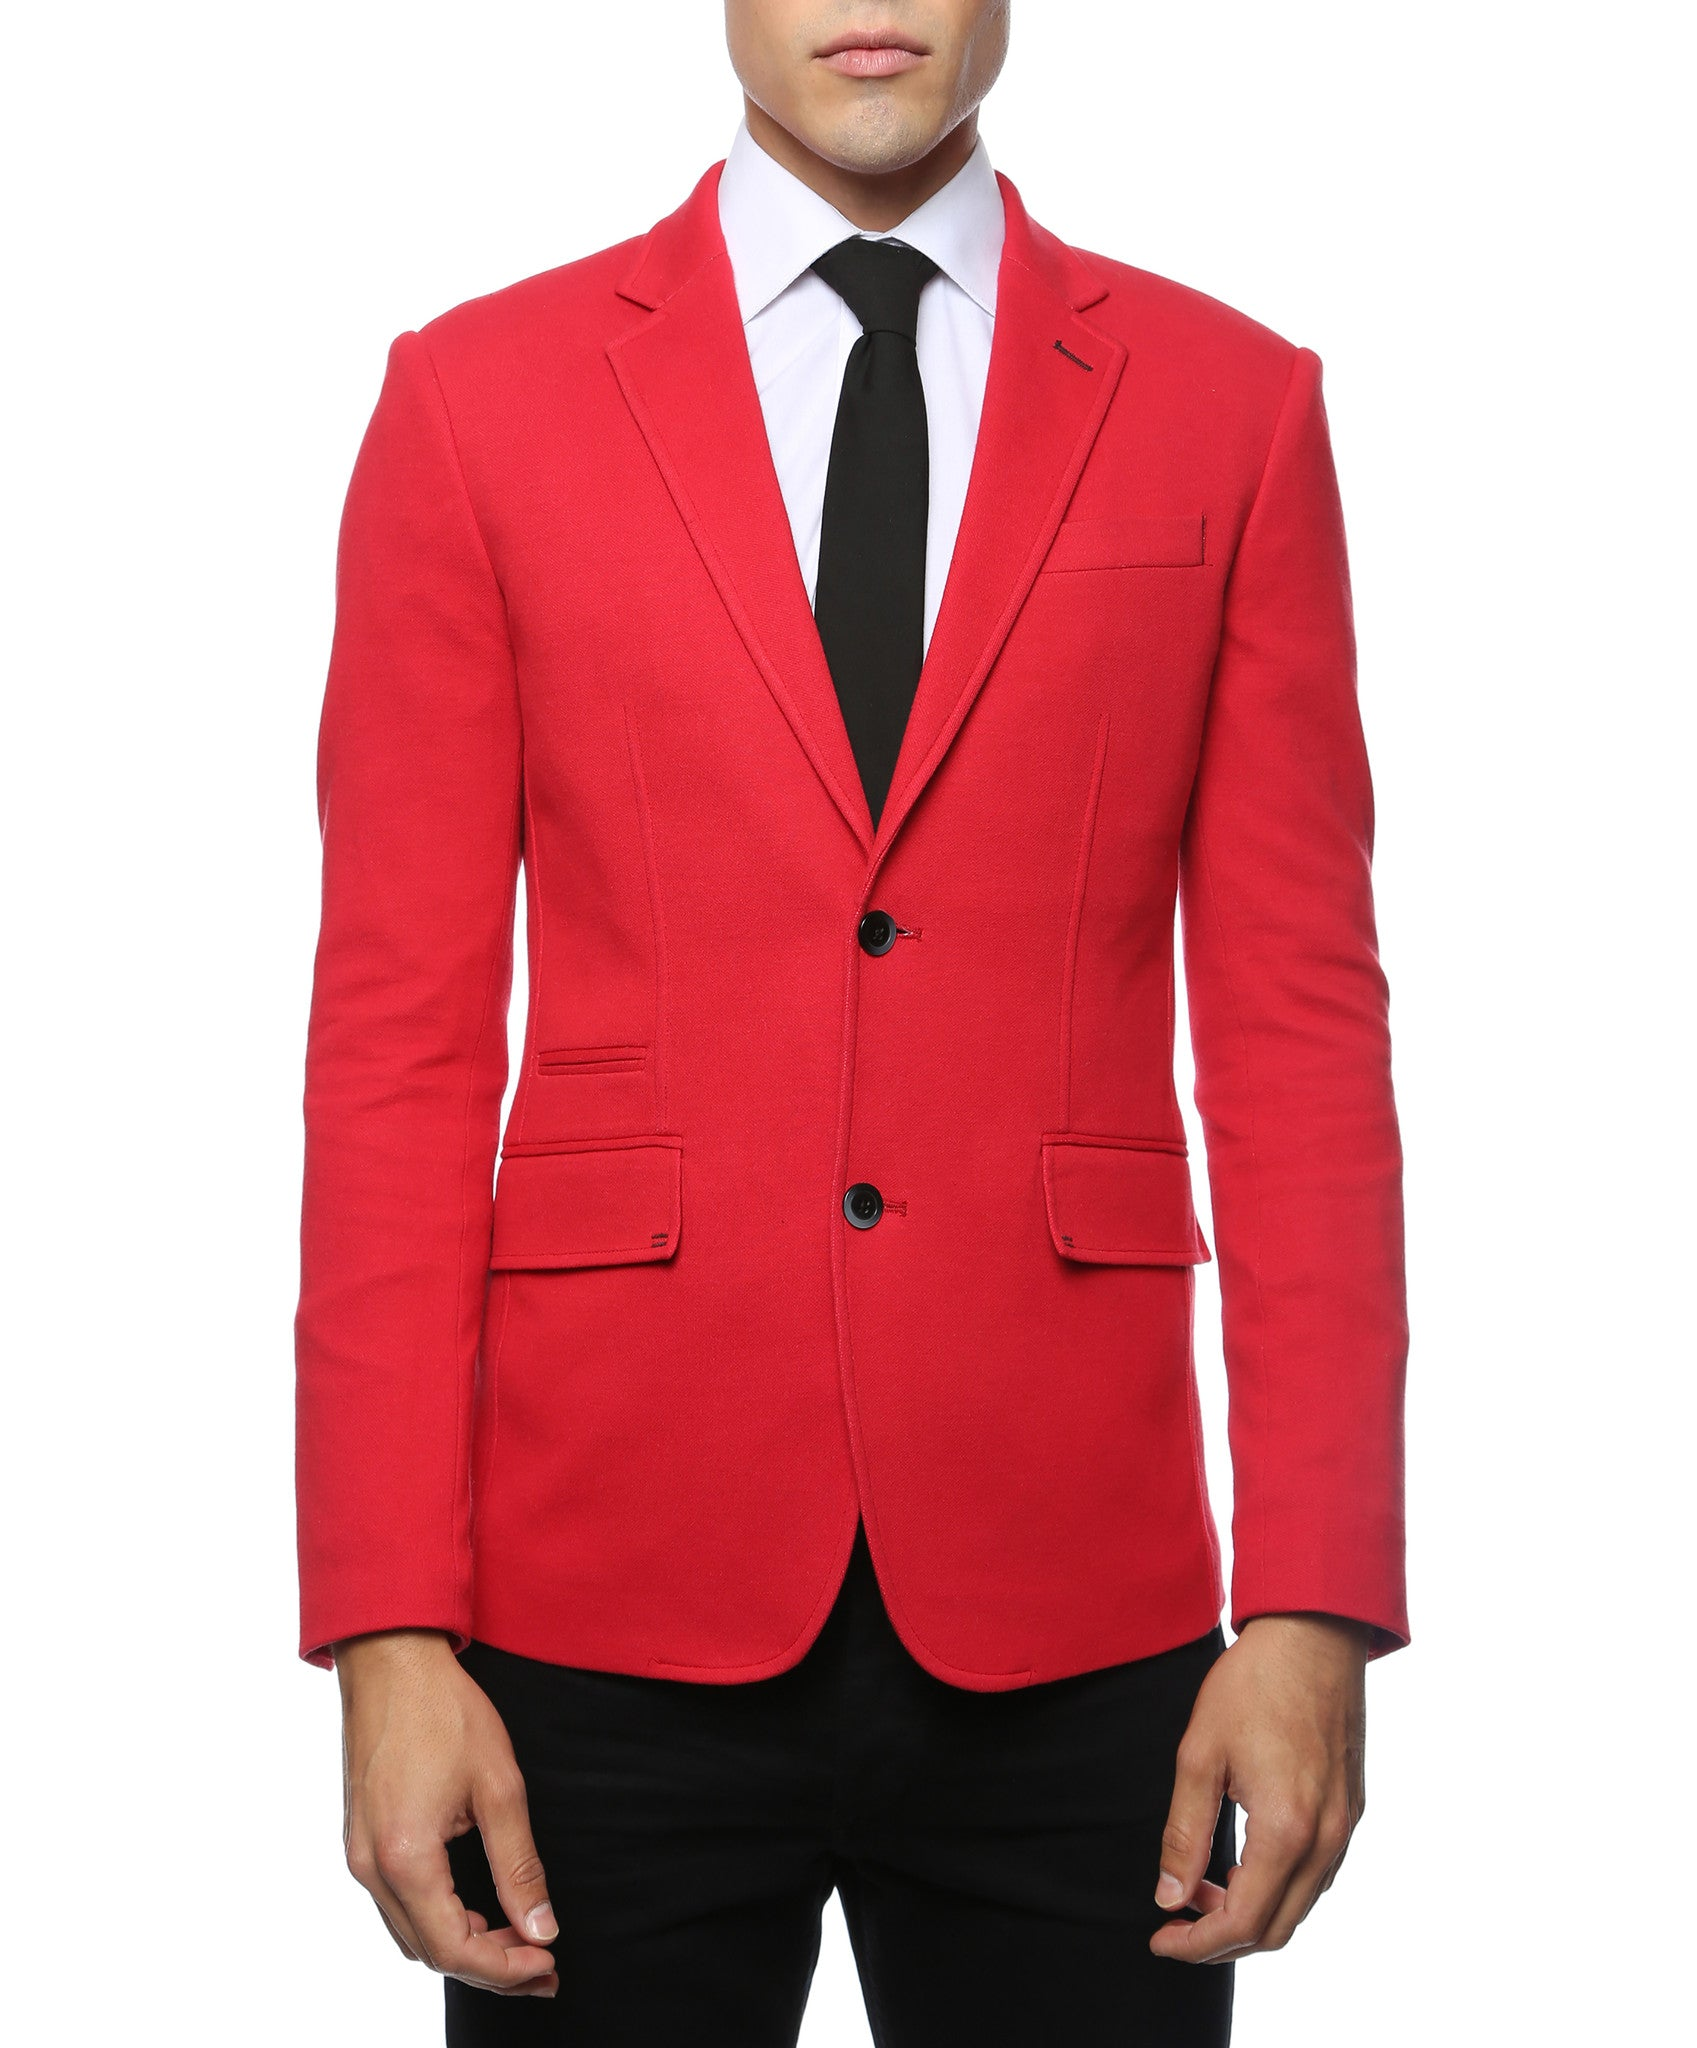 Find great deals on eBay for Mens Red Blazer in Blazers and Coats for Men. Shop with confidence.